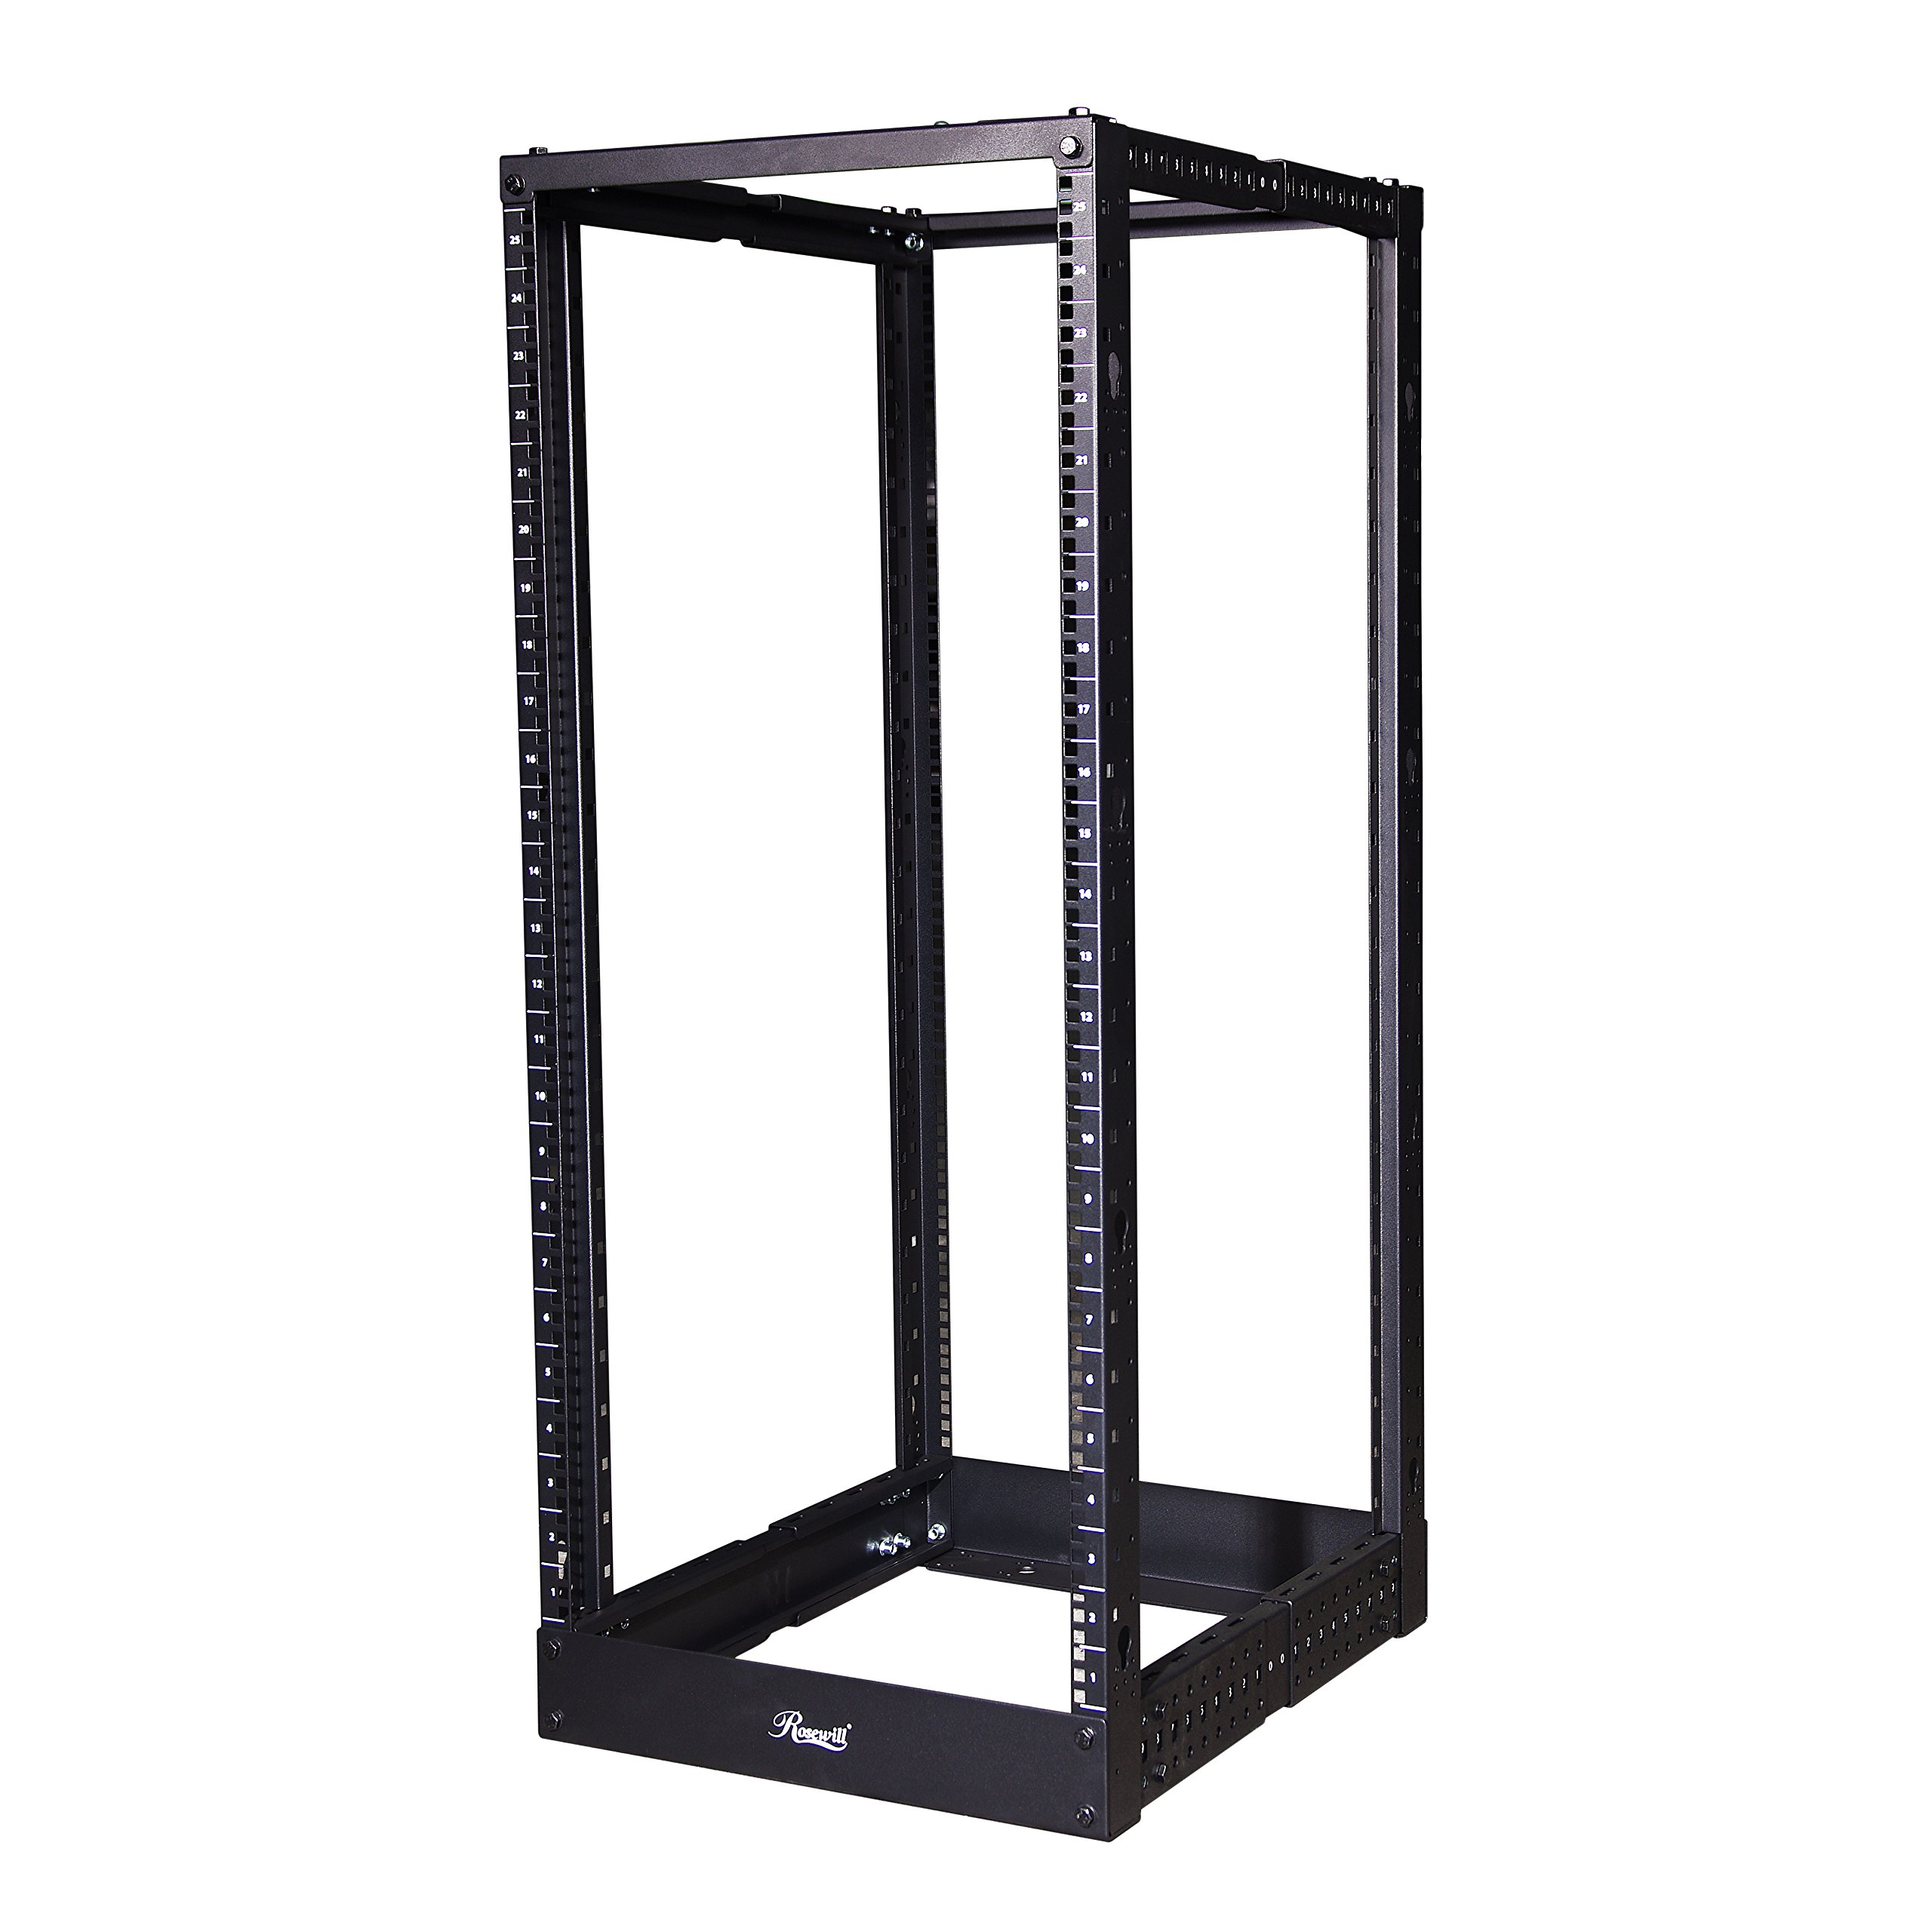 depth fully cheap accessories deals quotations on cabinet rack free find get line shopping enclosure at equipped lockable server guides